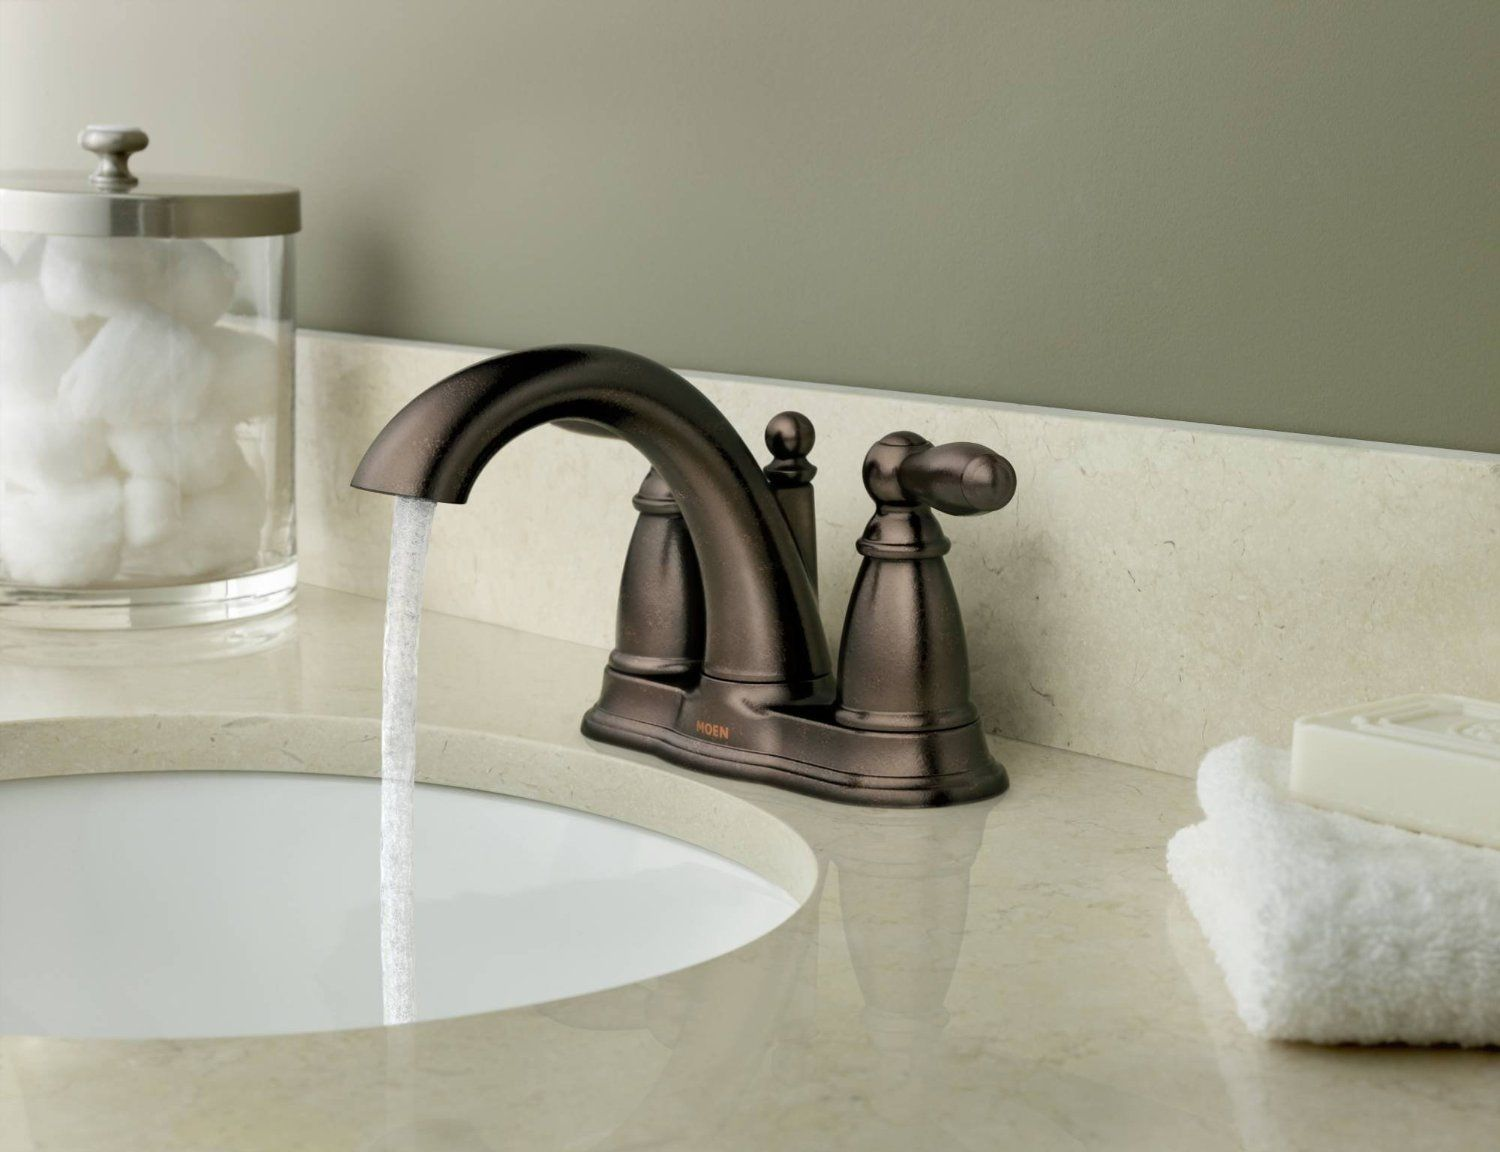 Best Rated Bathroom Faucets | BEDROOM FURNITURE | Pinterest | Faucet ...